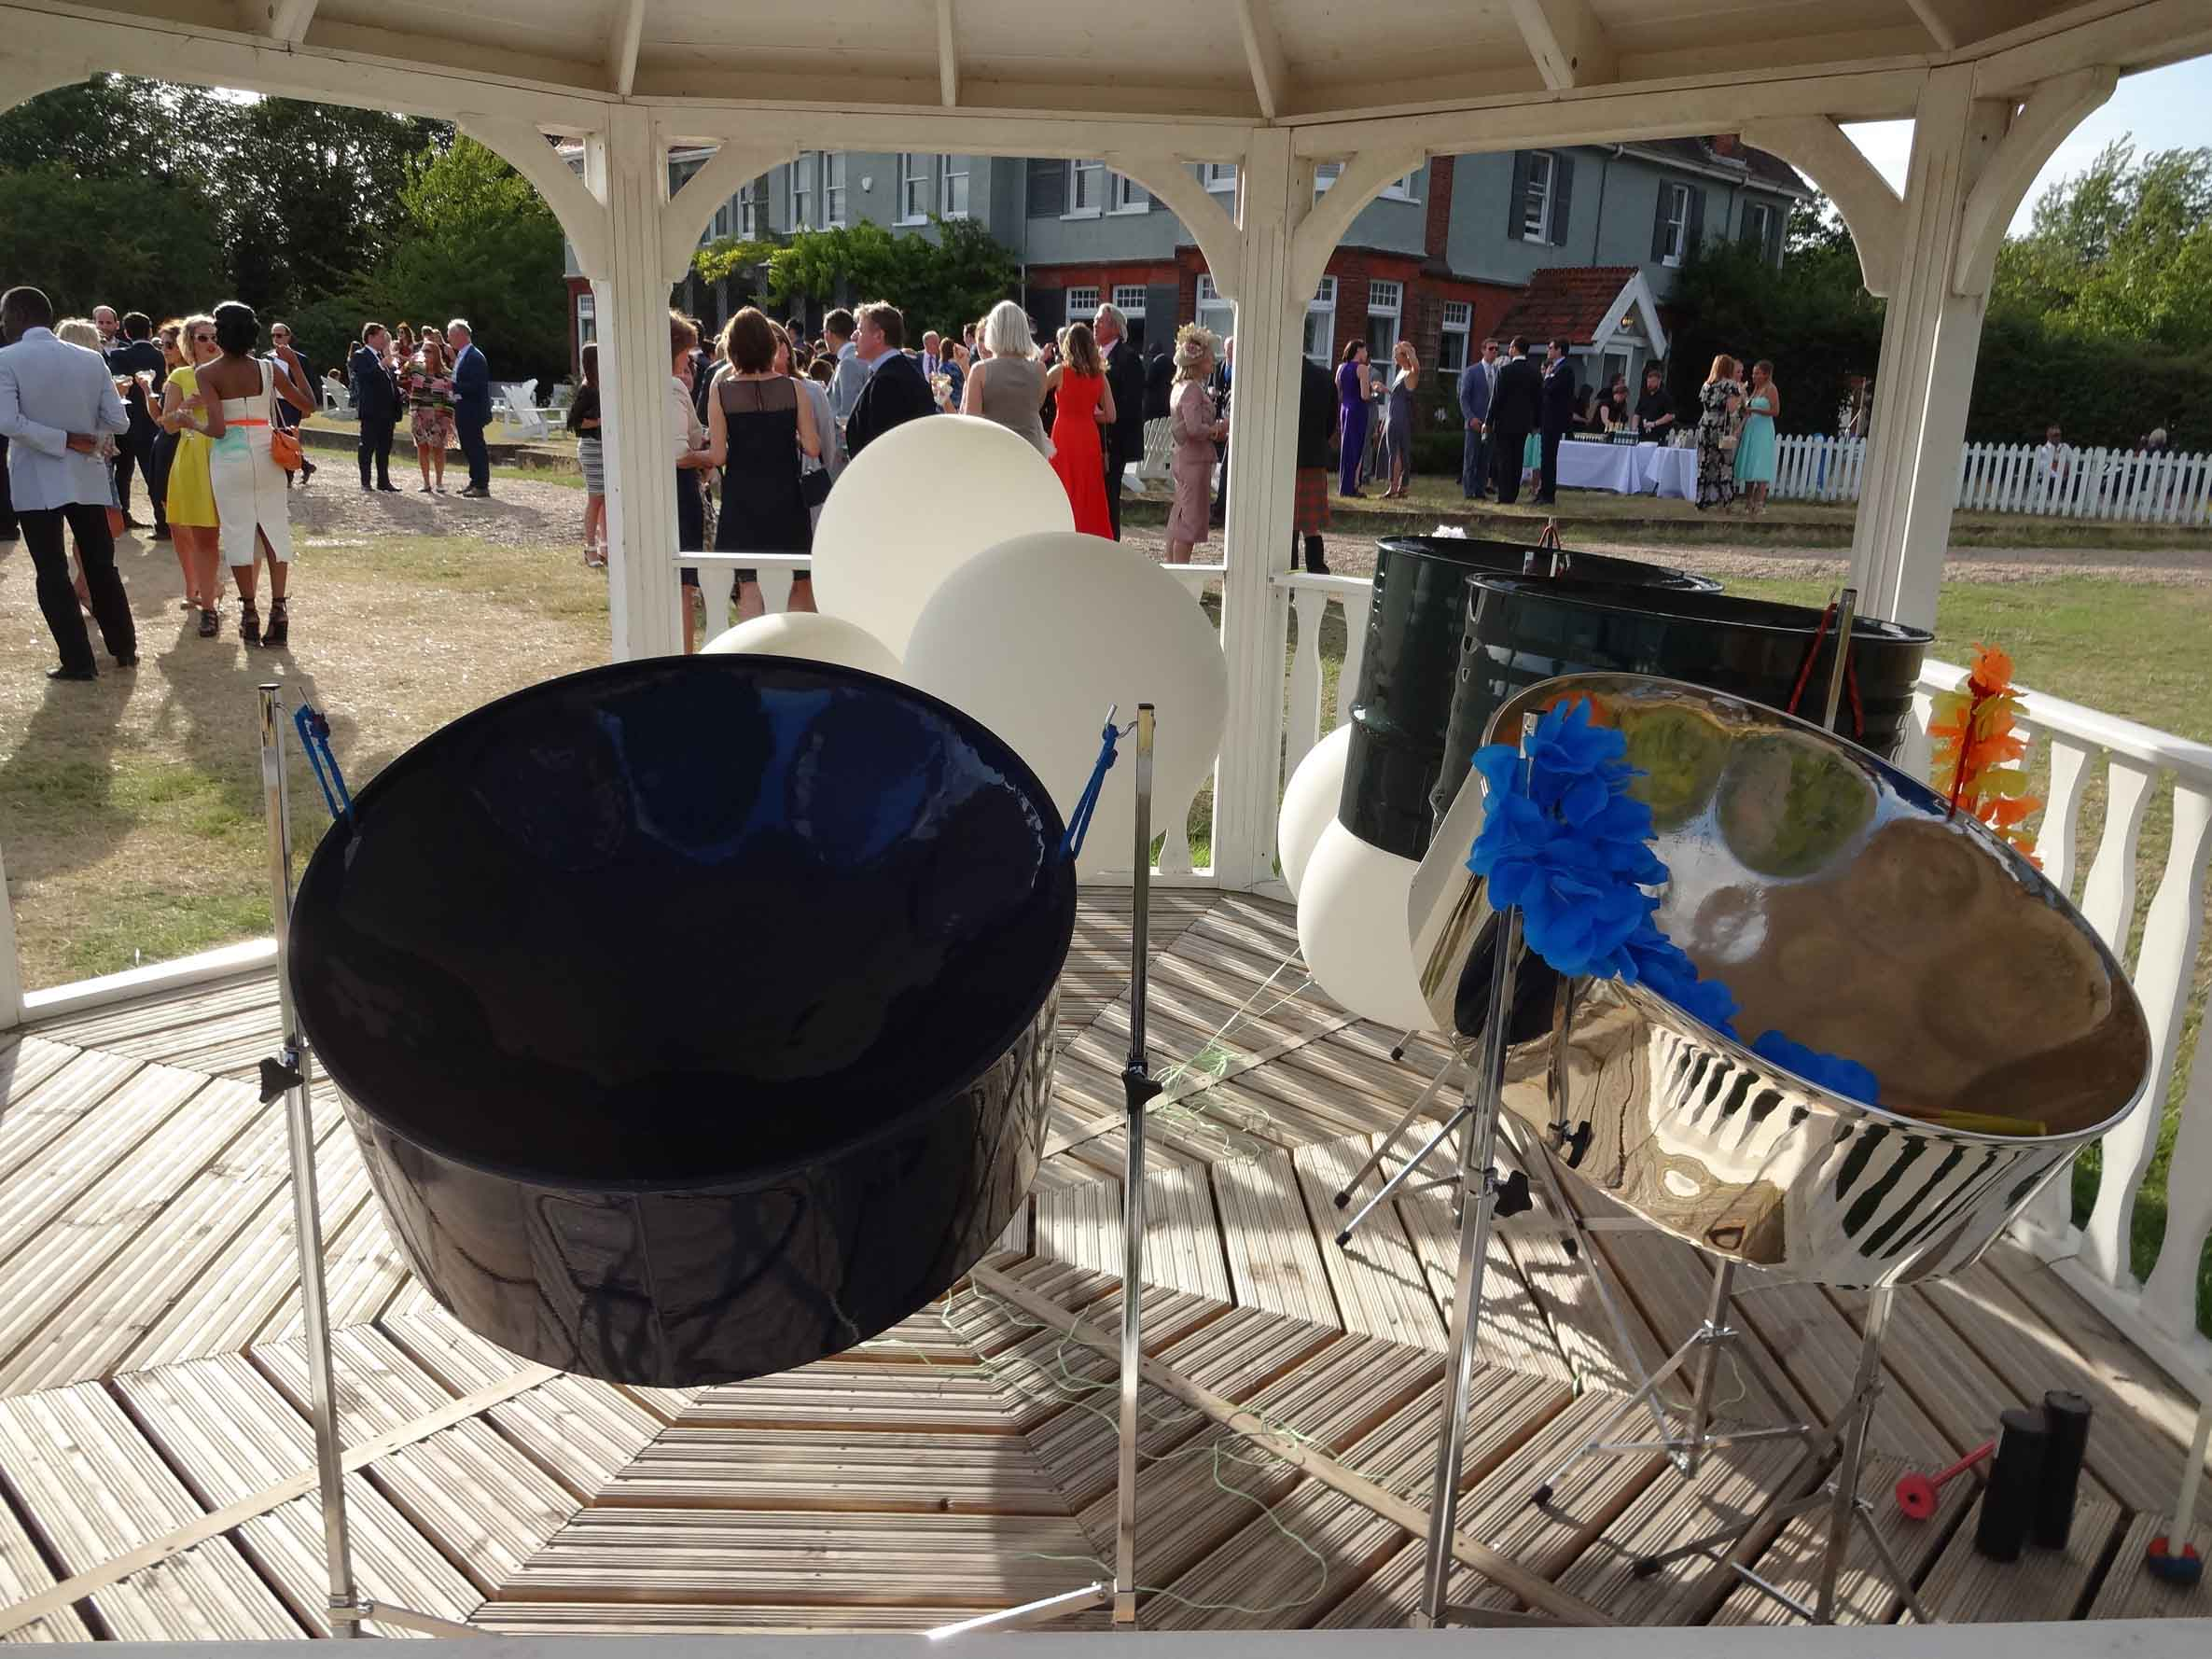 Which steel band for weddings?, steel band prices for weddings, how much to hire steel bands?